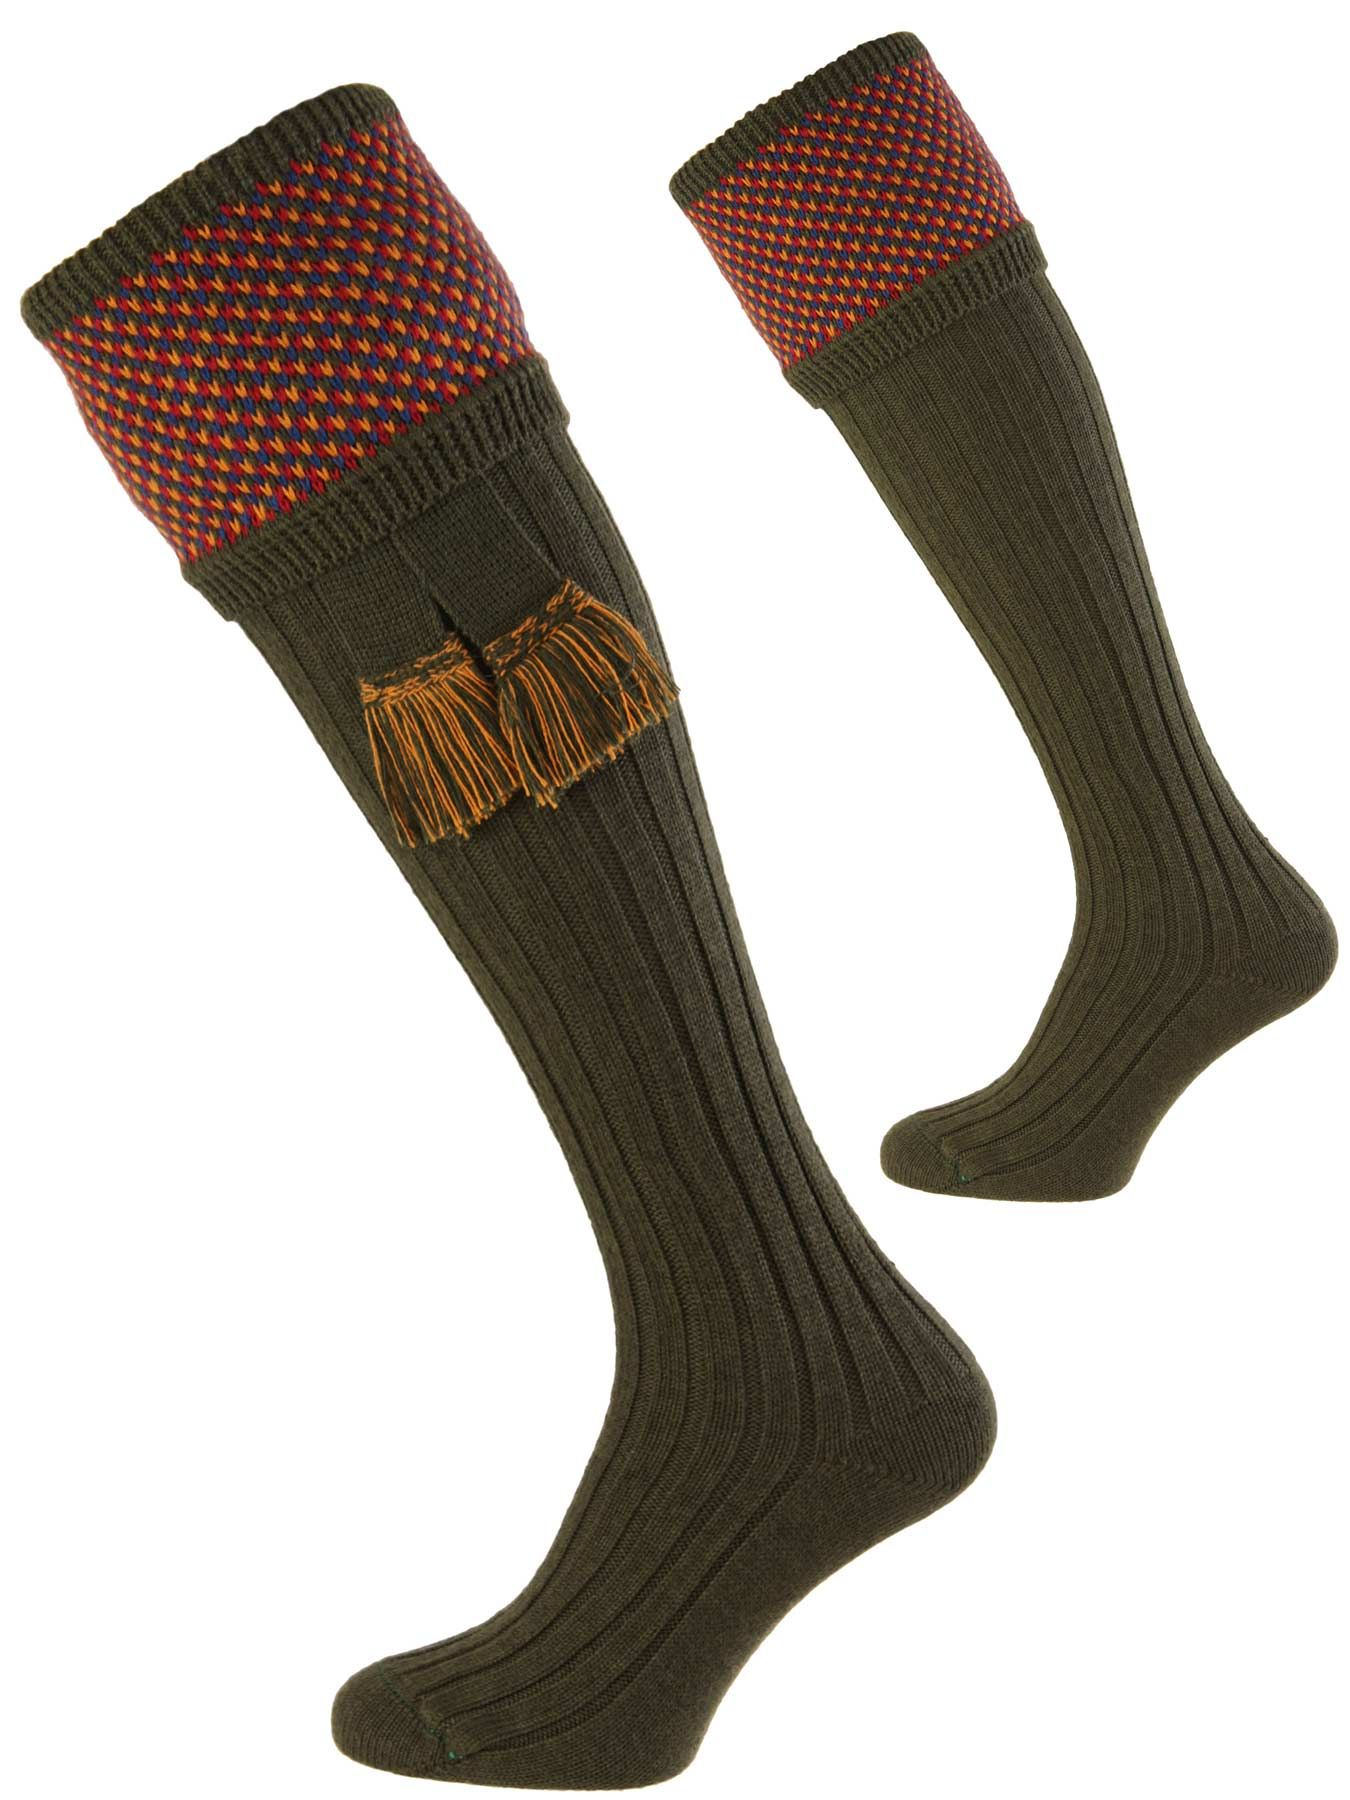 NEW High Quality House Of Cheviot Tayside Pattern Shooting Socks Size Choices